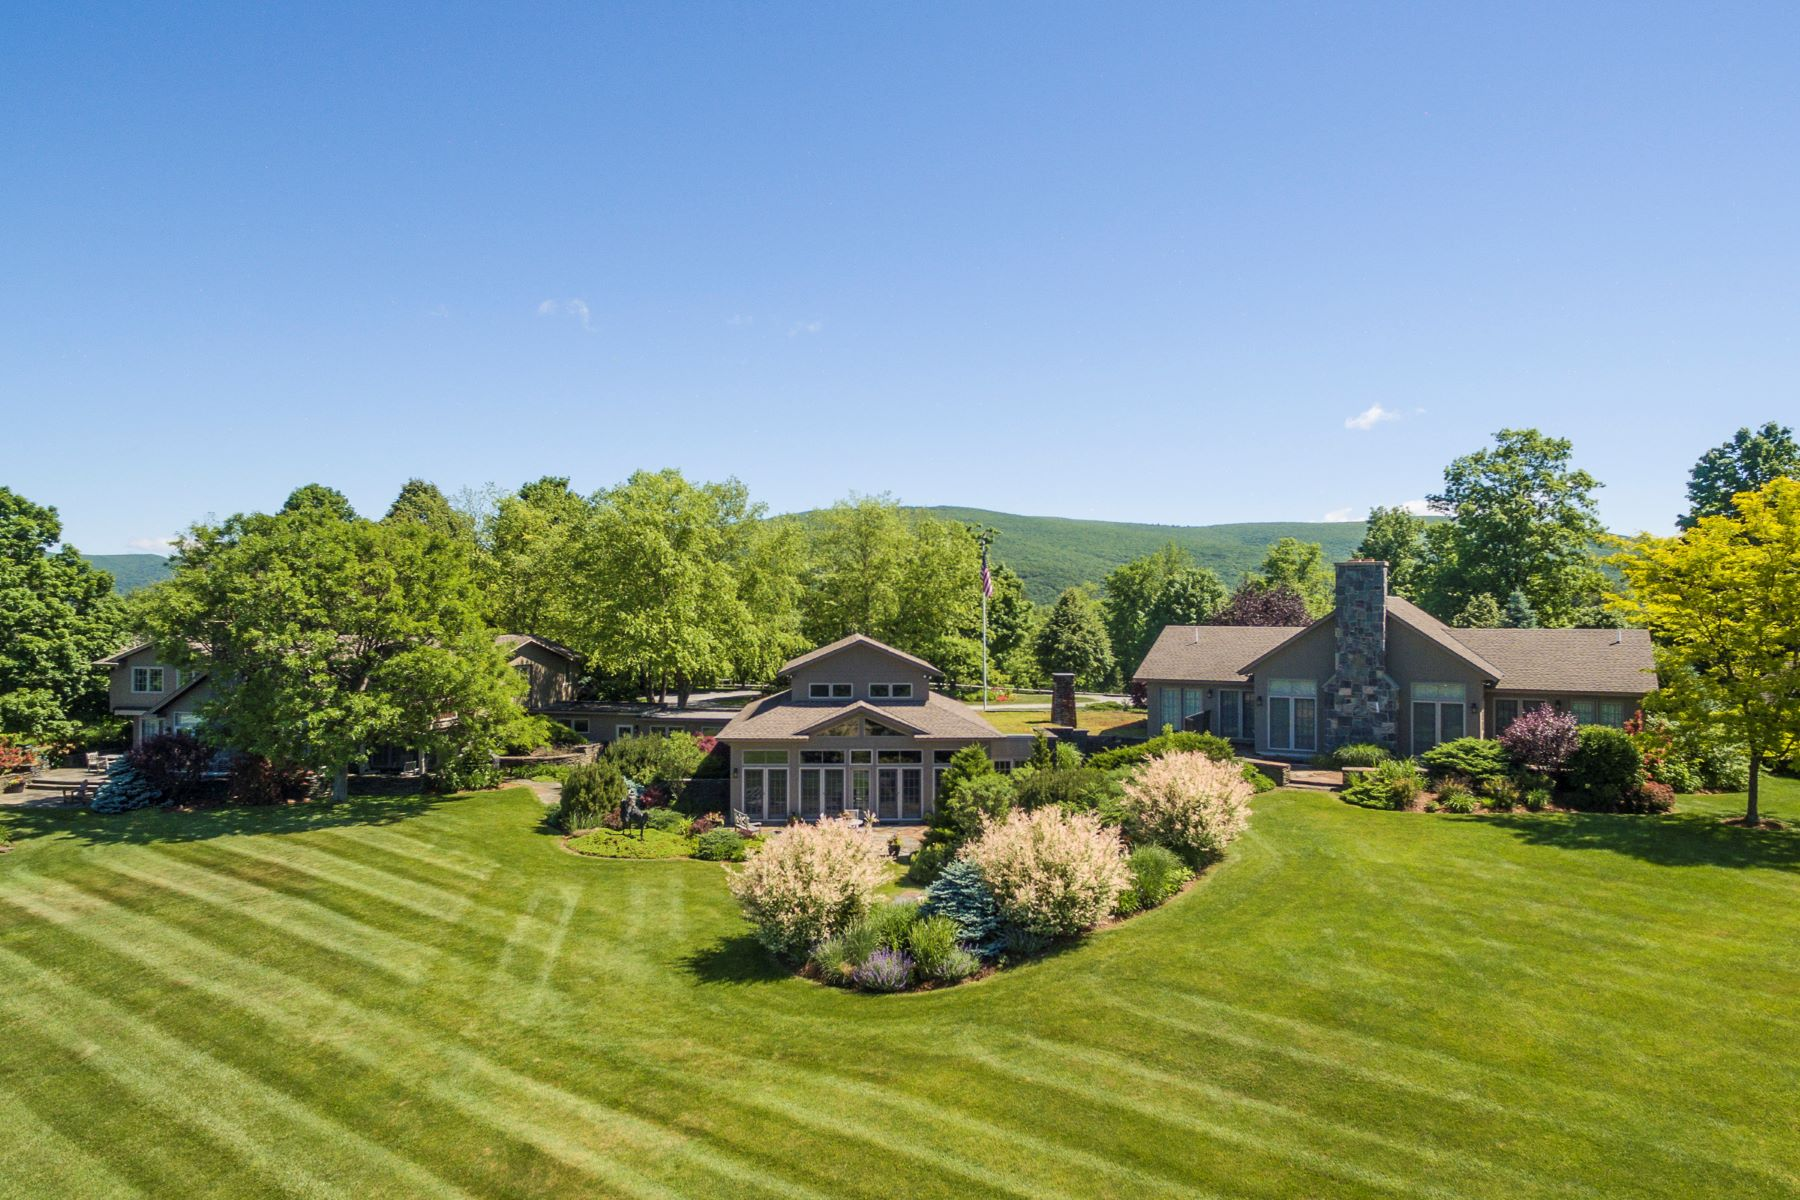 Eensgezinswoning voor Verkoop een t Live your dream in this stunning 11.7 acre Country Estate with Indoor Pool and T 465 Stratton Rd Williamstown, Massachusetts 01267 Verenigde Staten